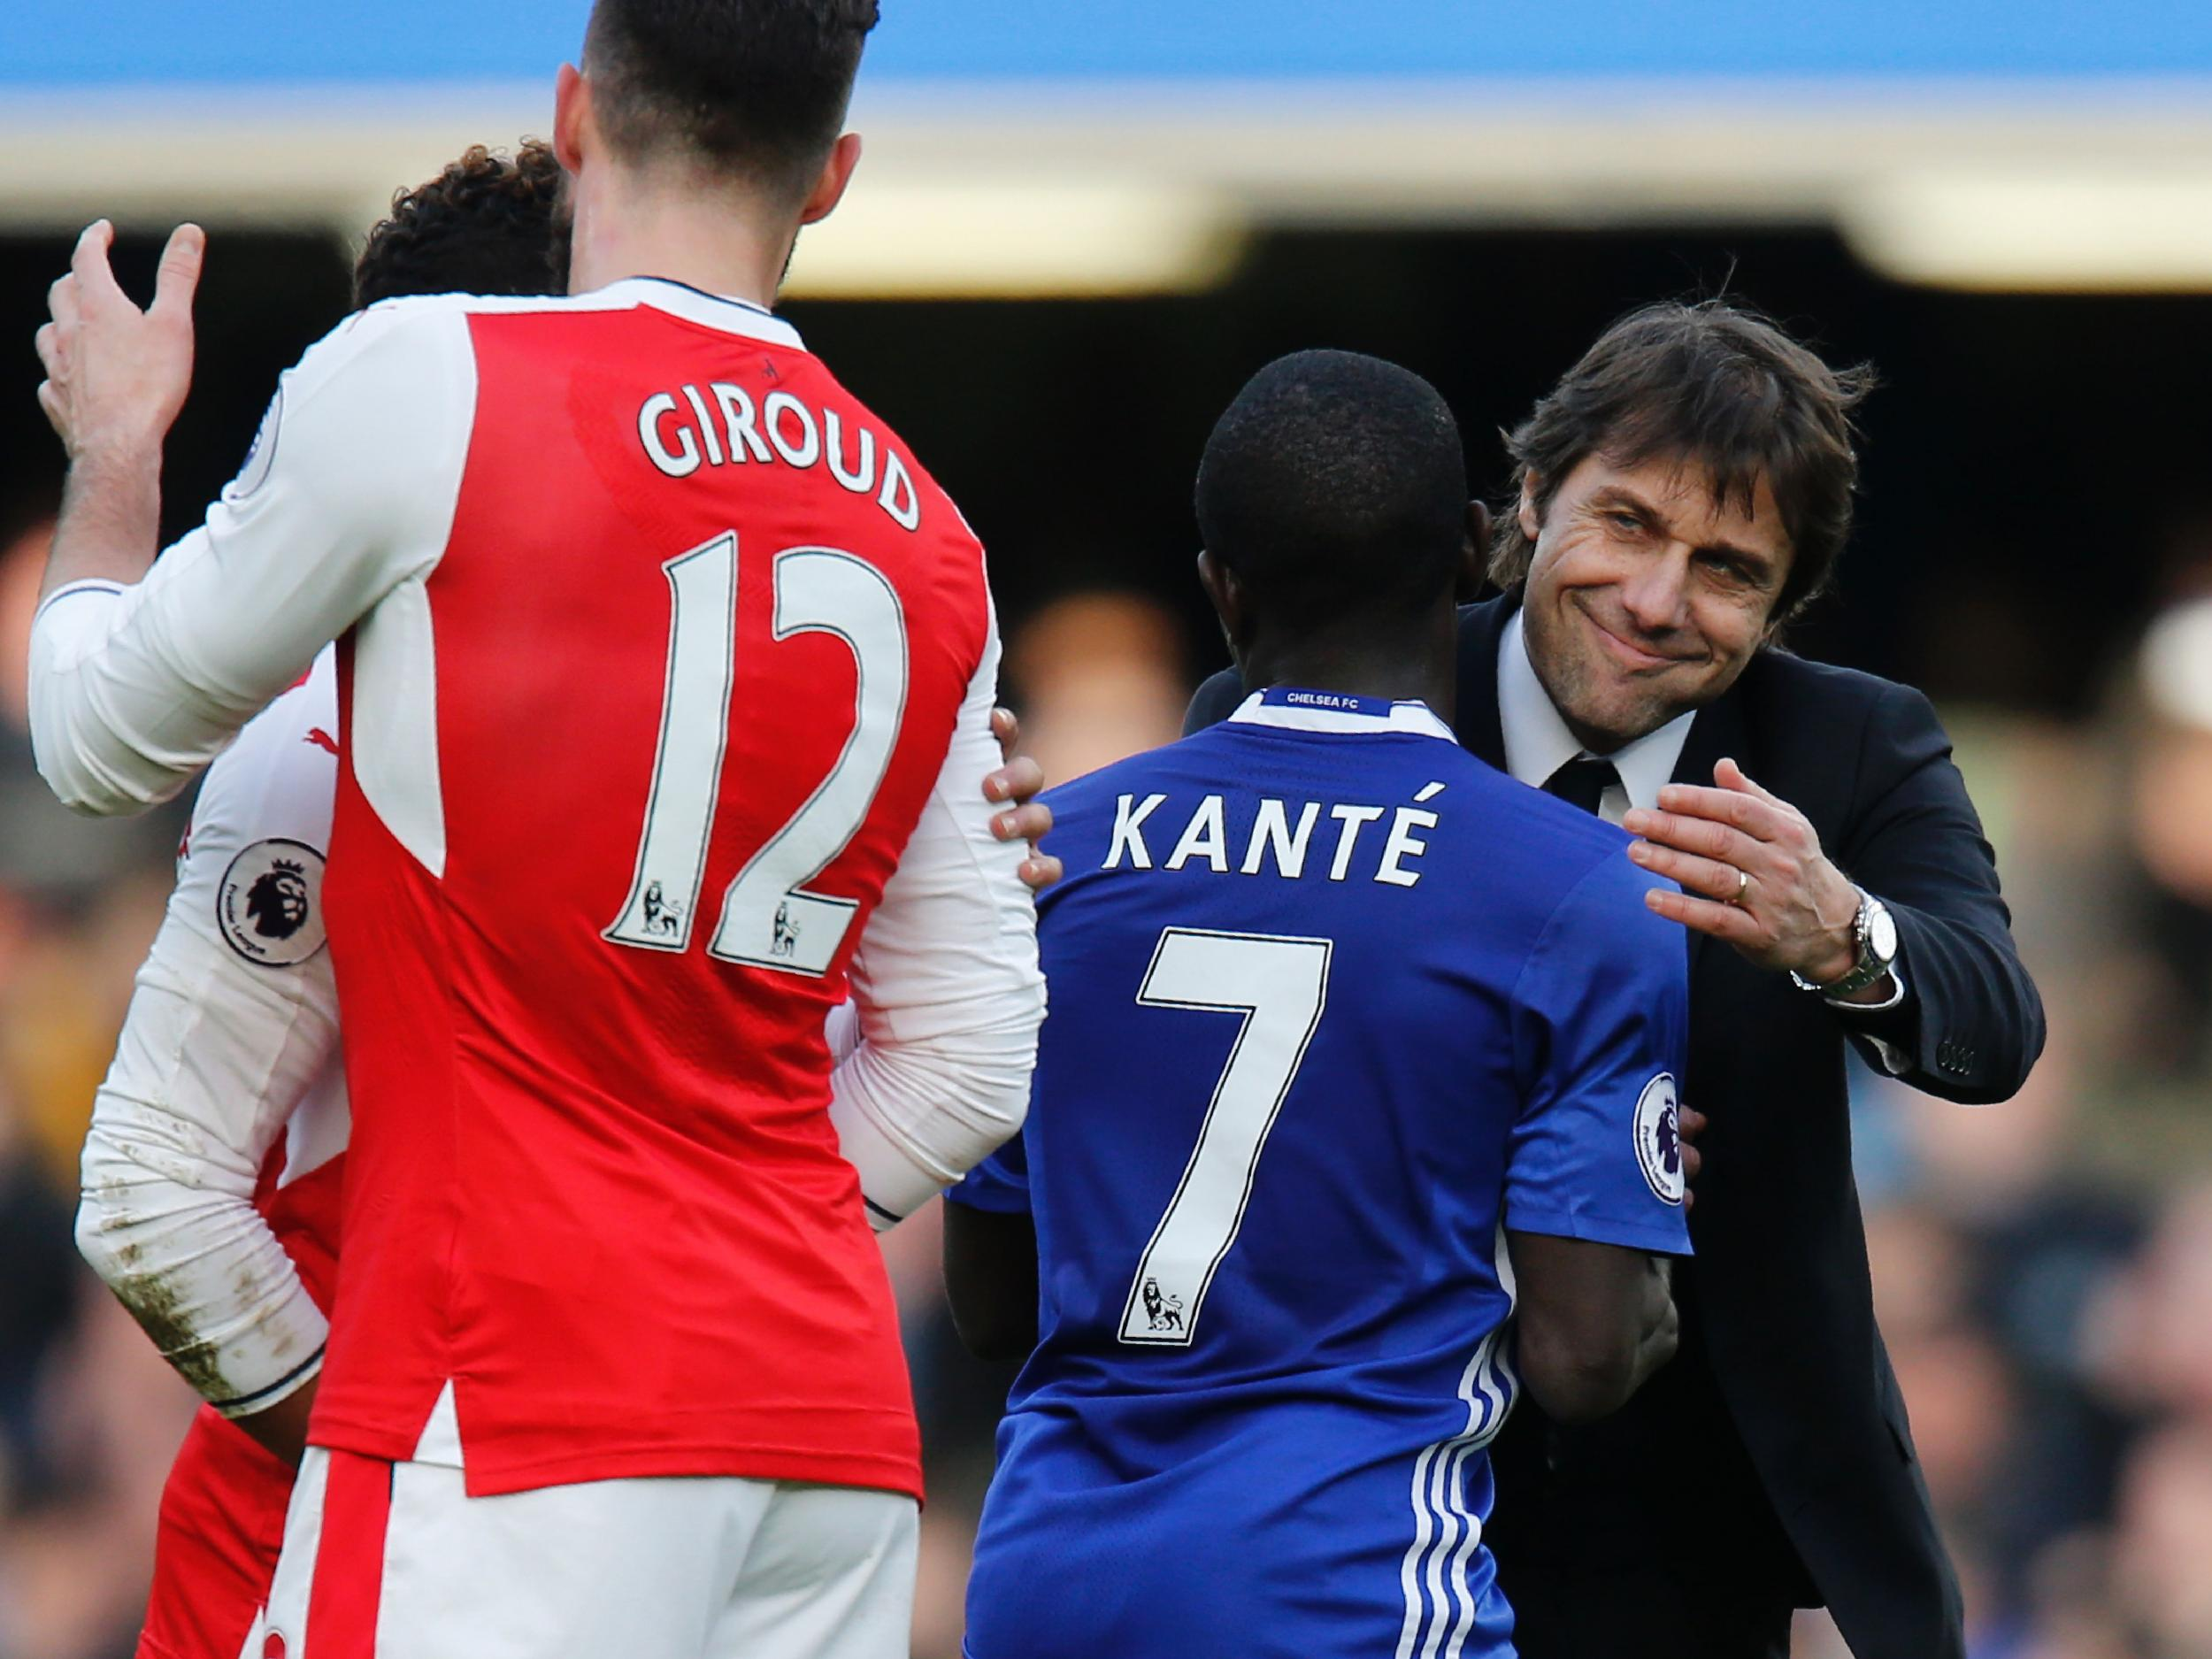 quality design 76538 a1dac Antonio Conte sees himself in N'Golo Kante, Chelsea's ...